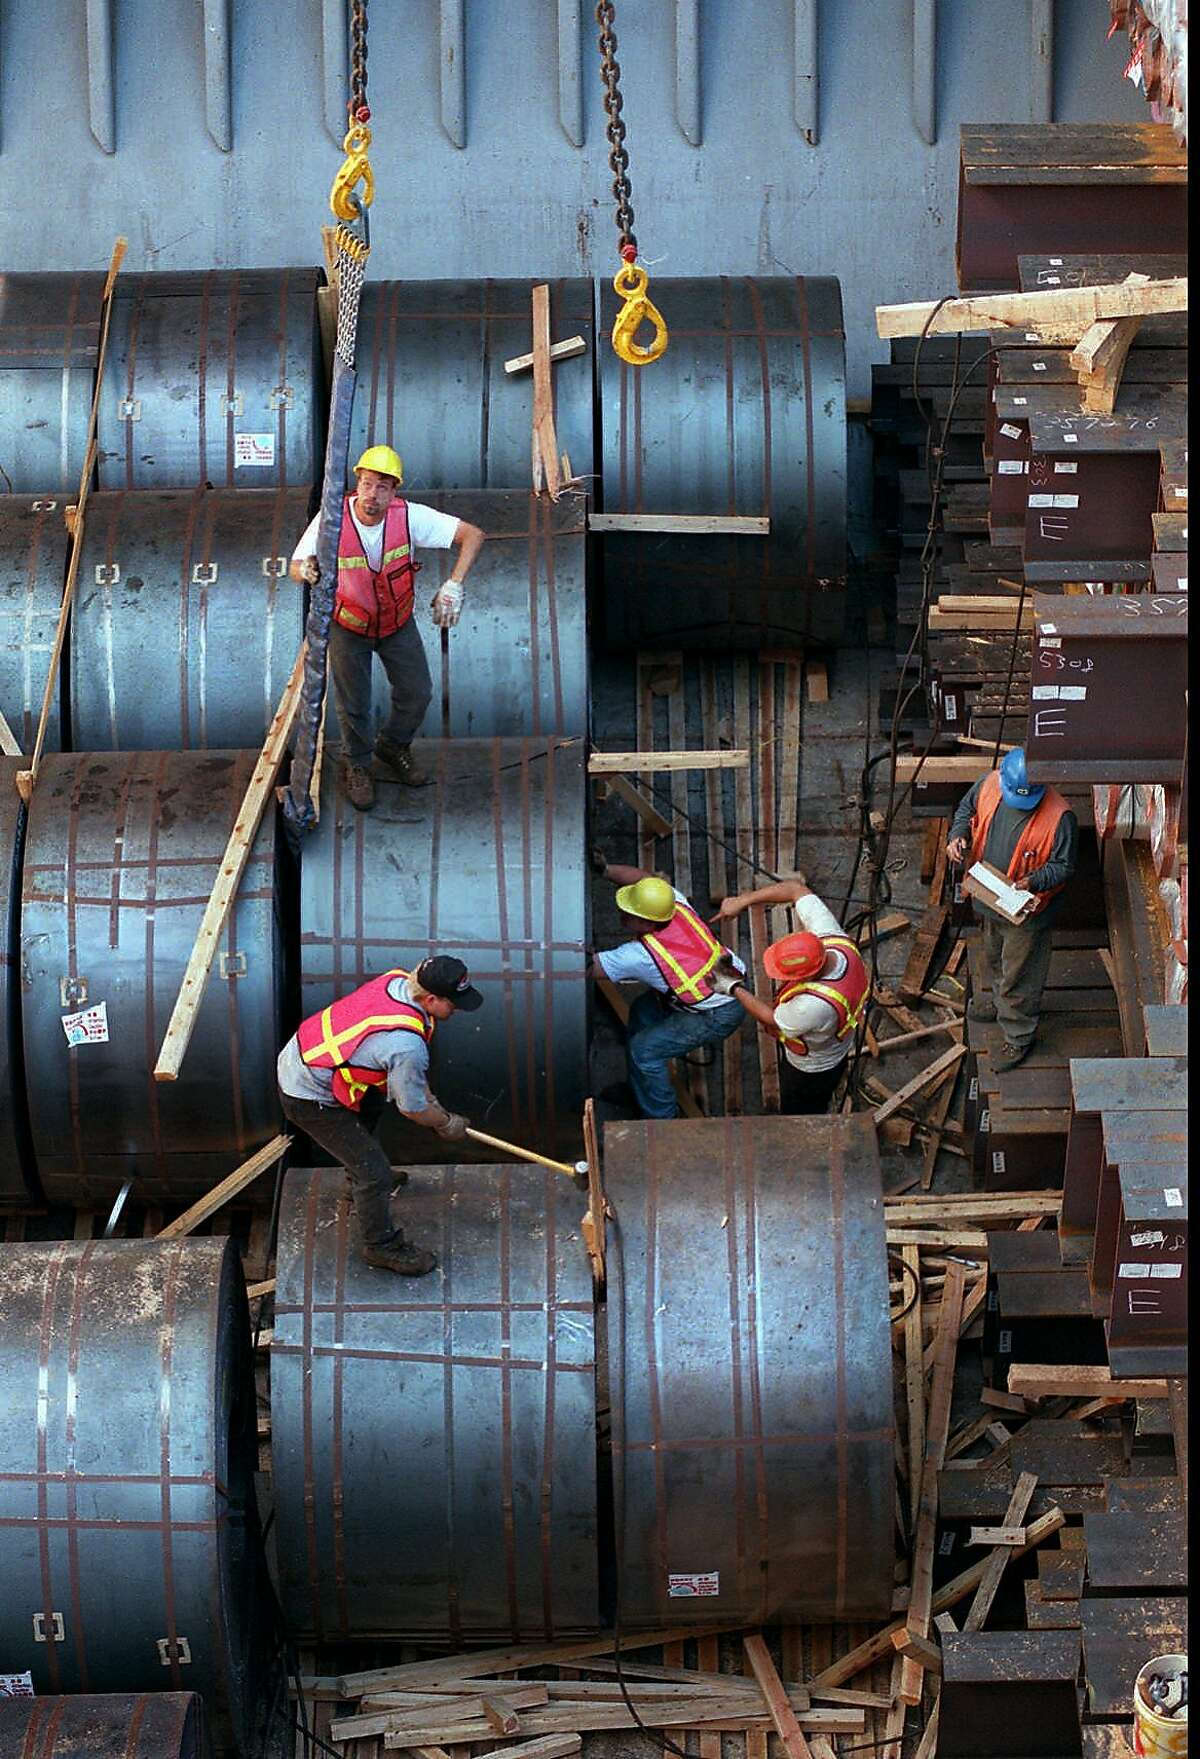 Longshore workers unloading unprocessed steel. On Monday, President Trump said he would press forward with tariffs on imported steel and aluminum.